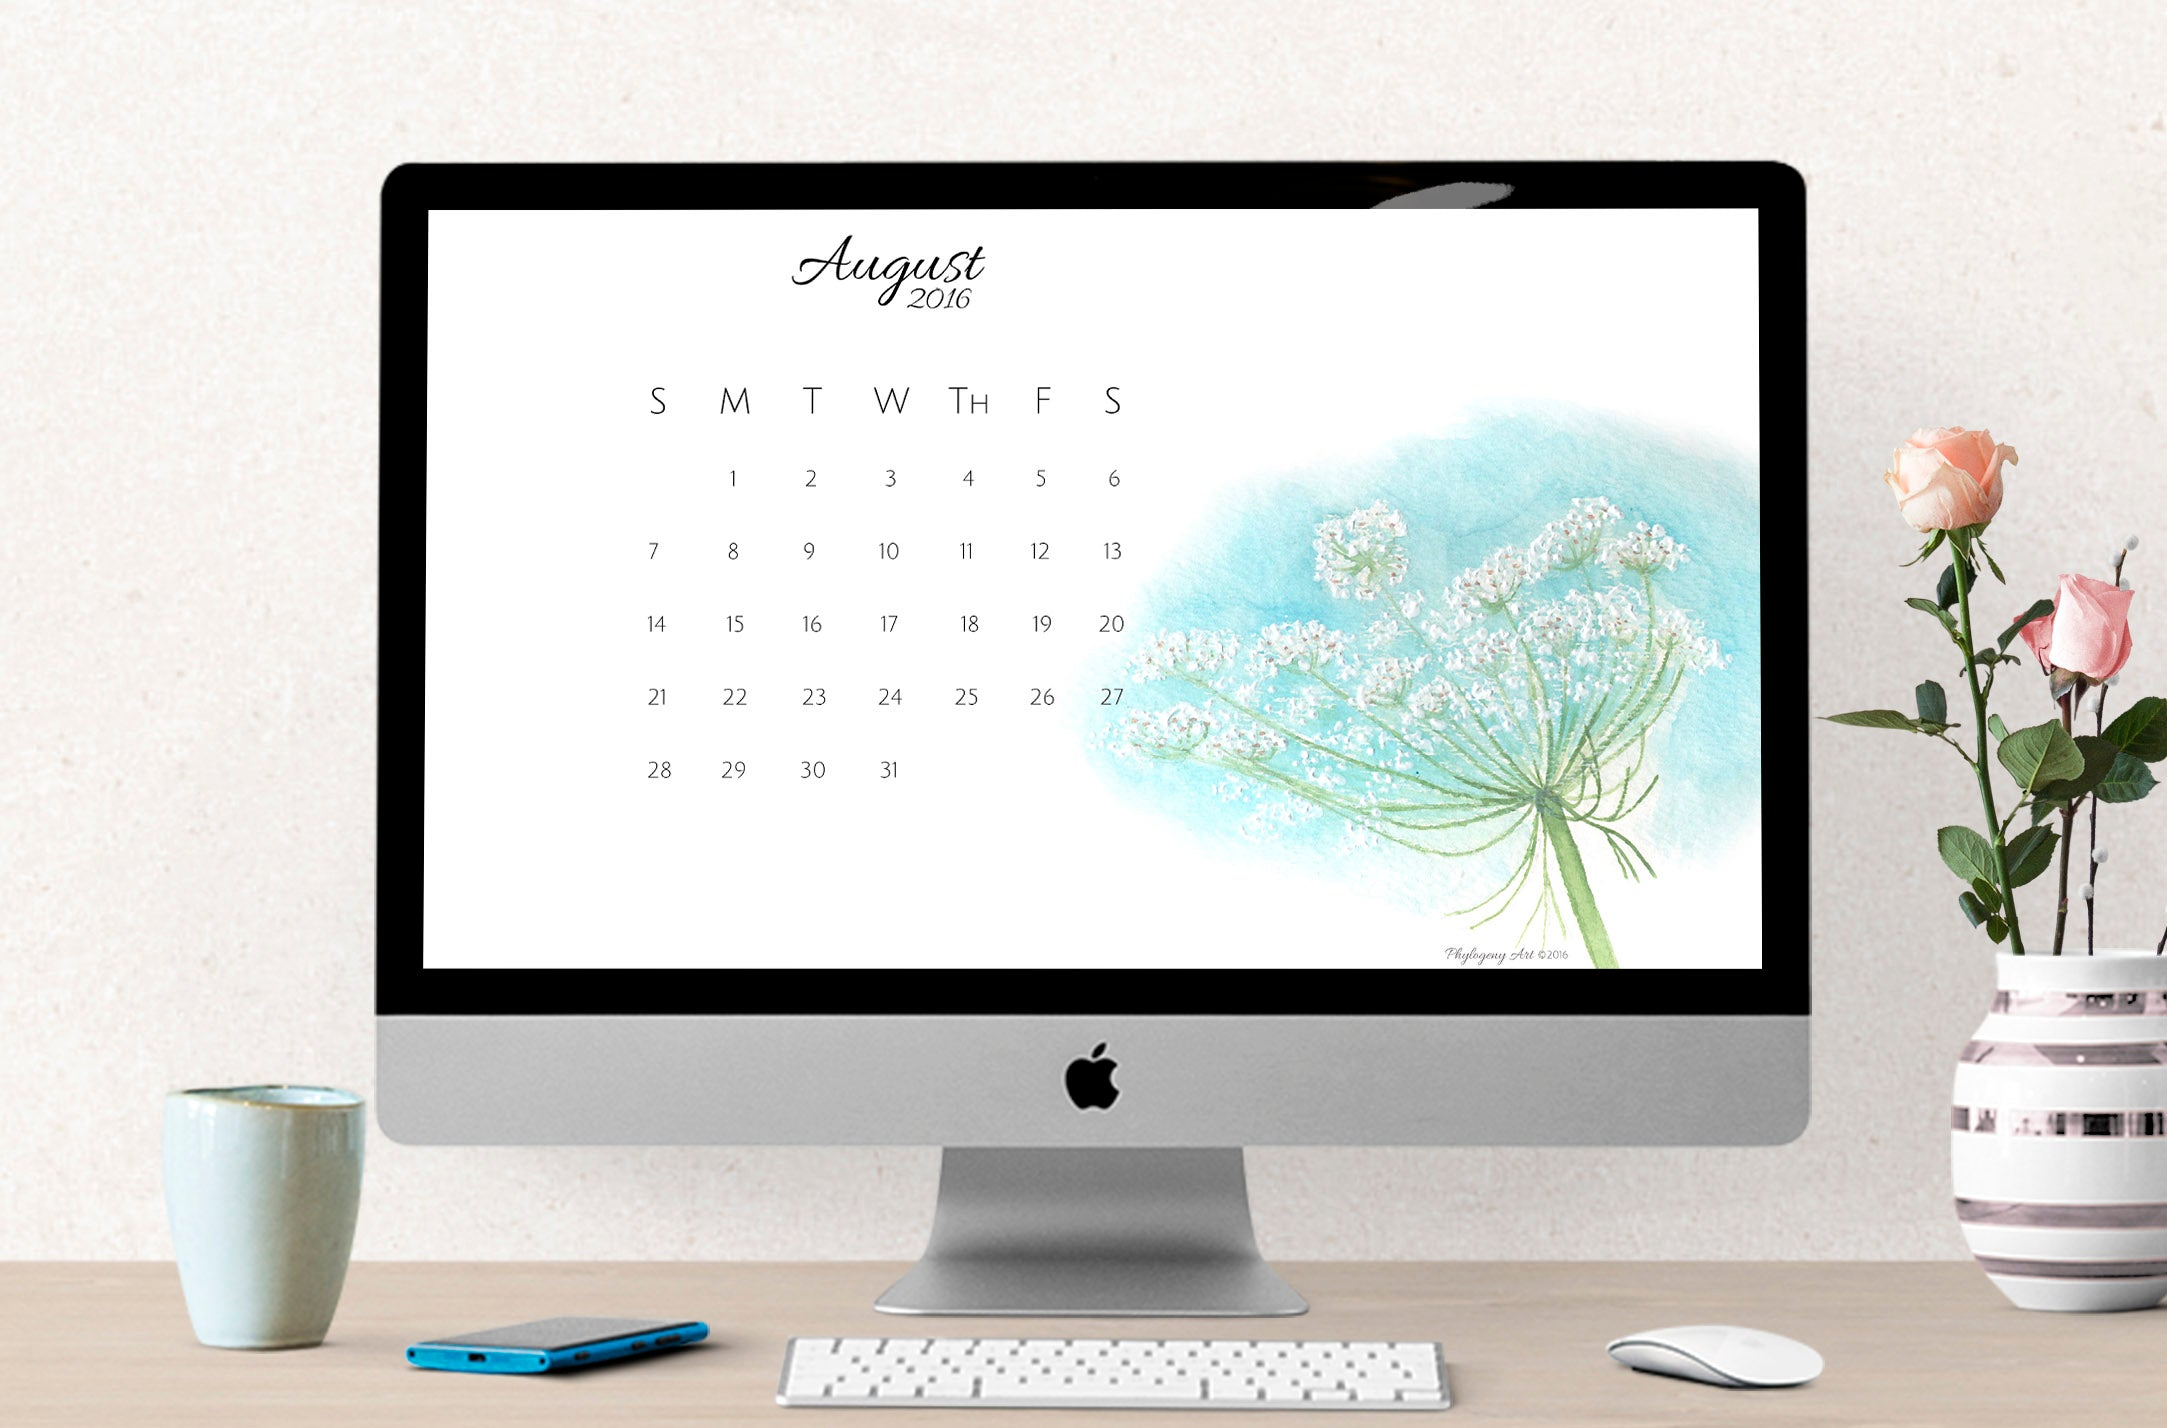 August 2016 Watercolor Desktop calendar download Phylogeny Art